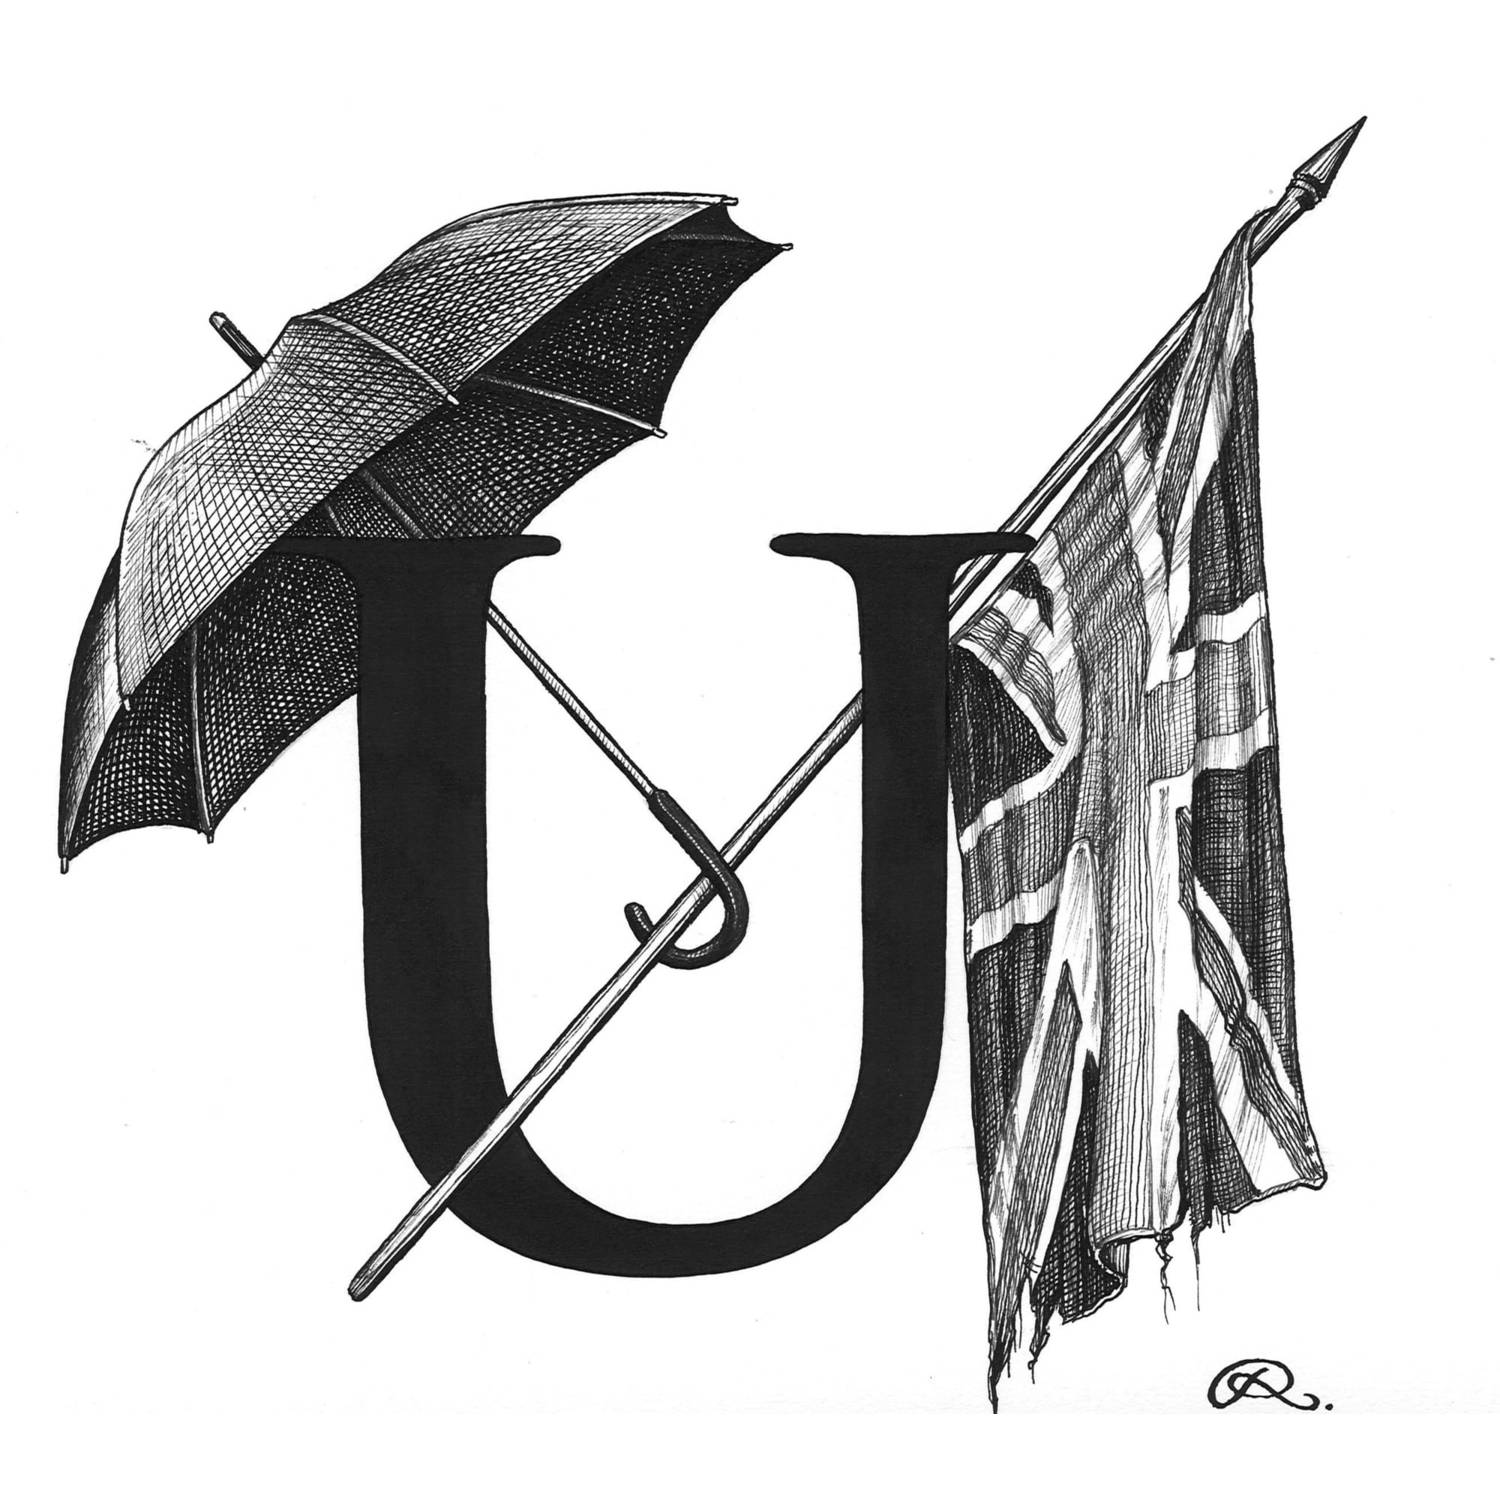 U - Union of Umbrellas Intricate Ink Print-0